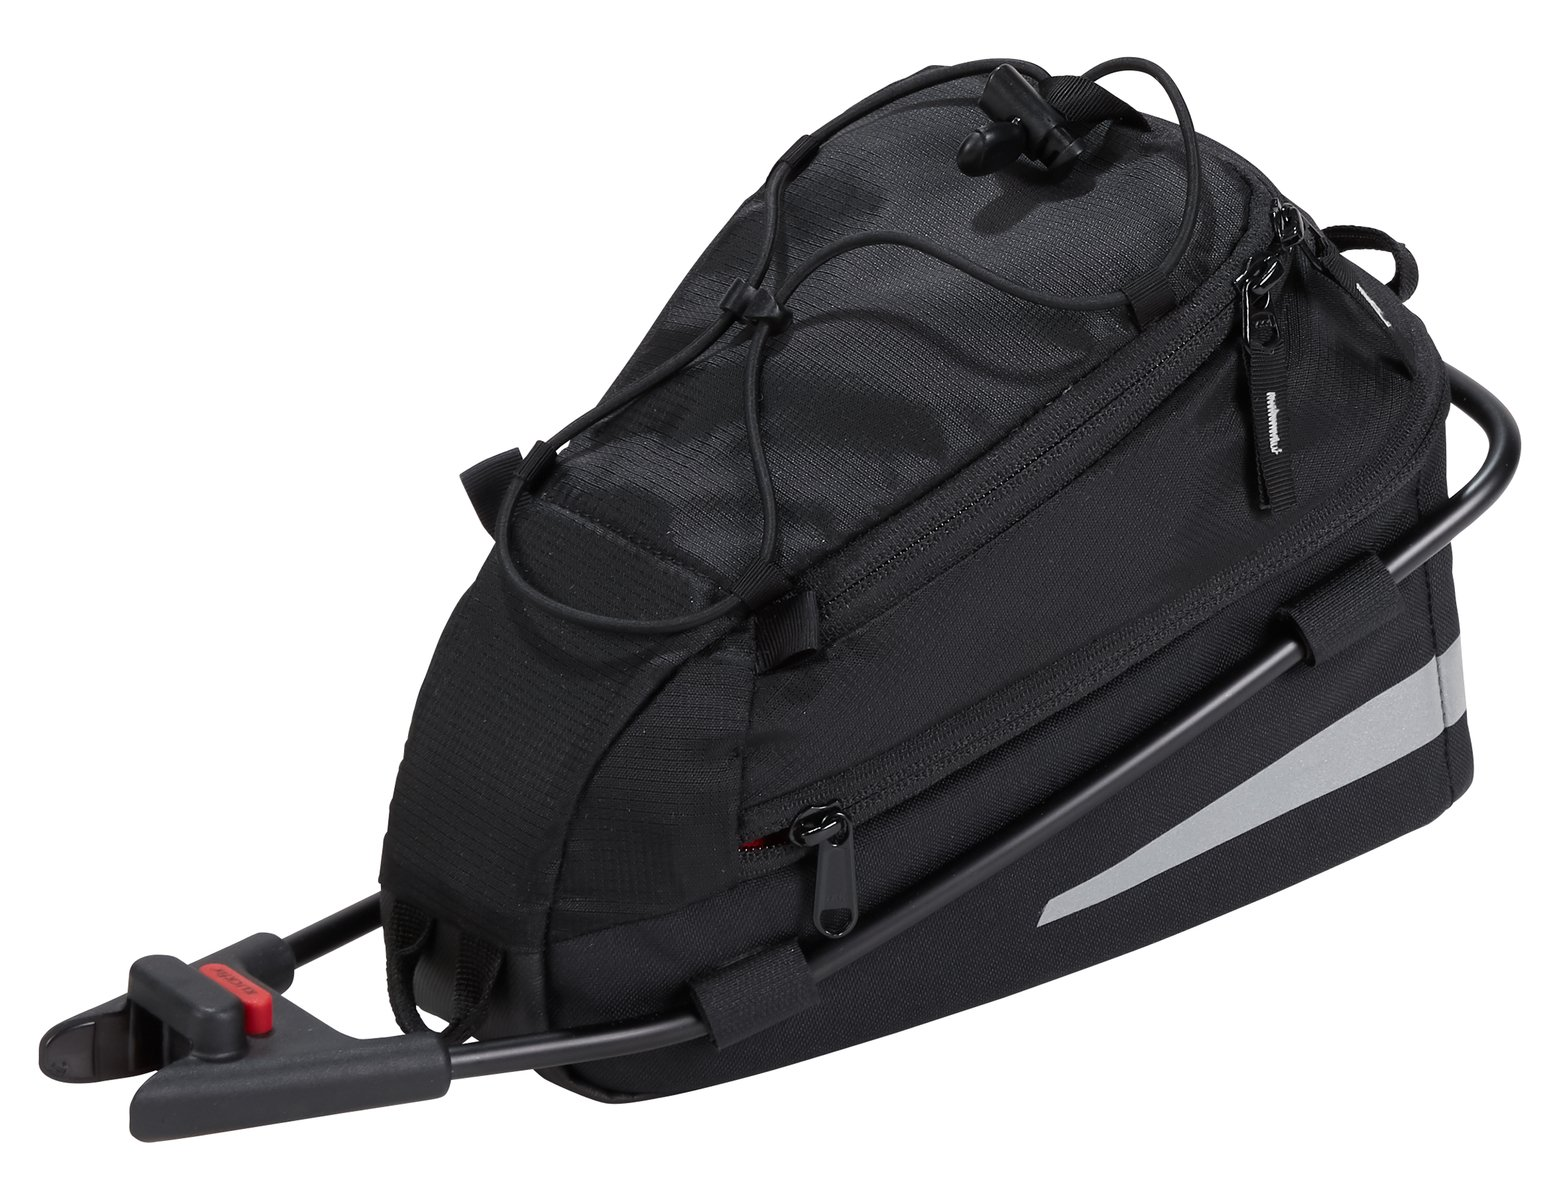 Vaude Off Road S sadeltaske | Saddle bags